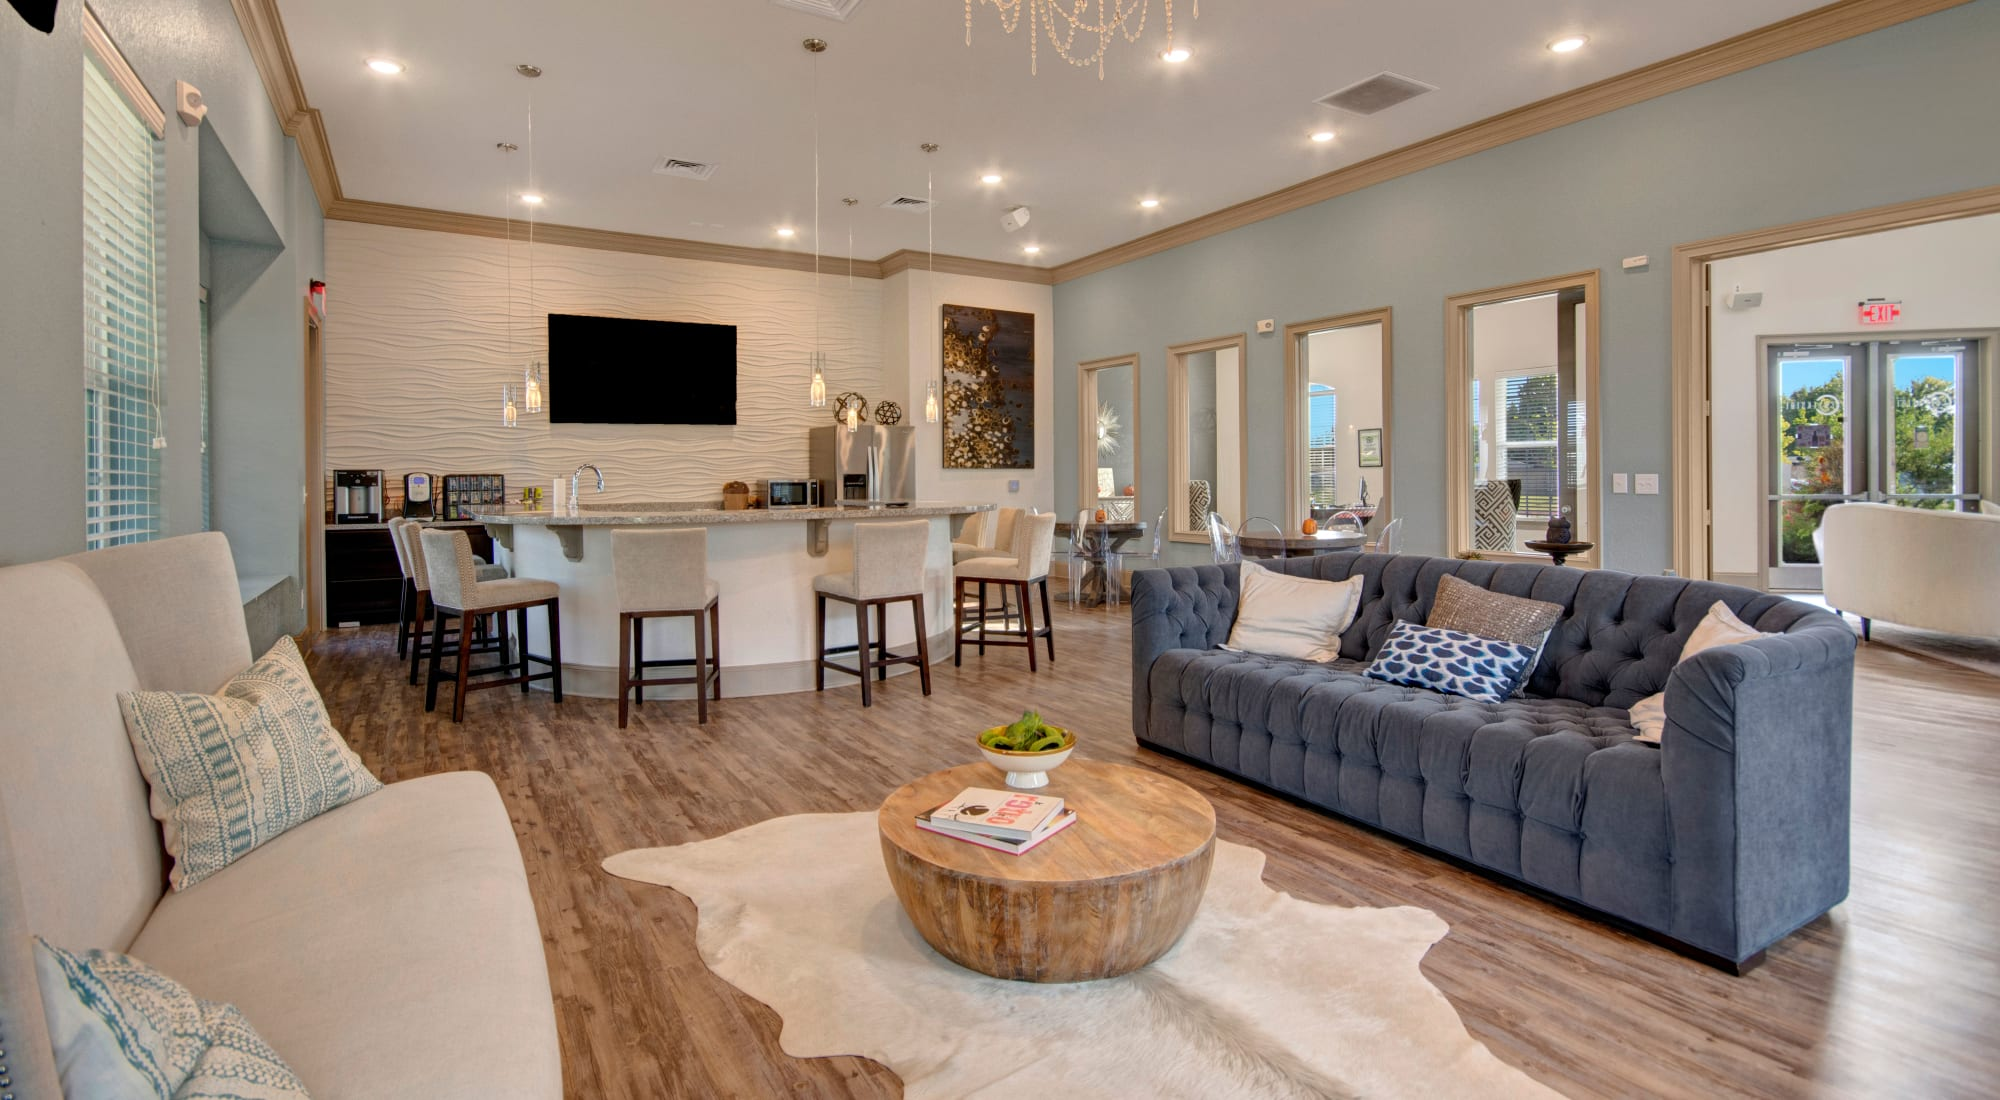 Photo gallery at Creekside South in Wylie, Texas